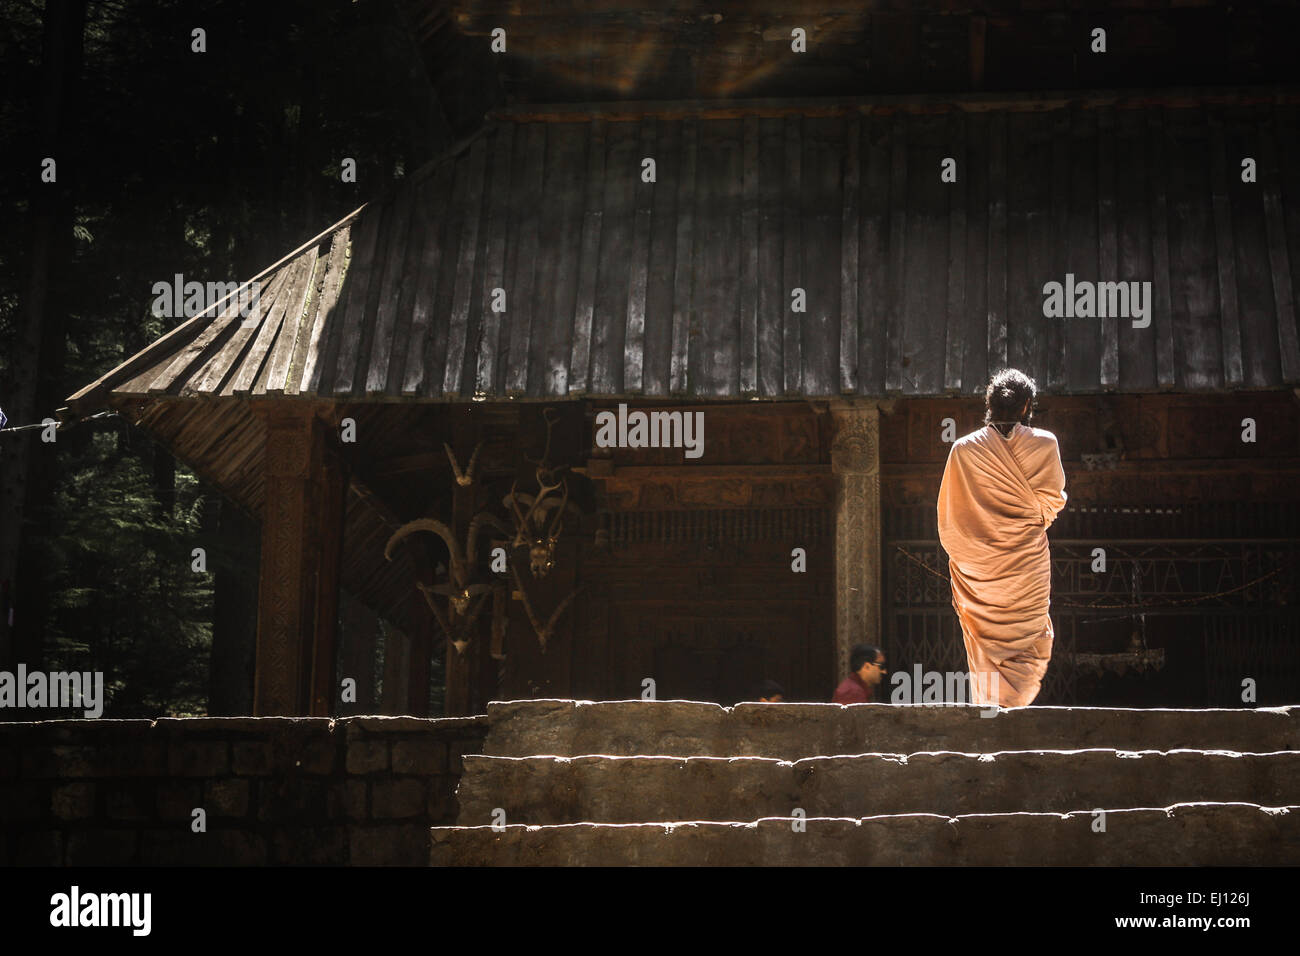 Silhouette of a monk walking into a temple in Manali, India - Stock Image